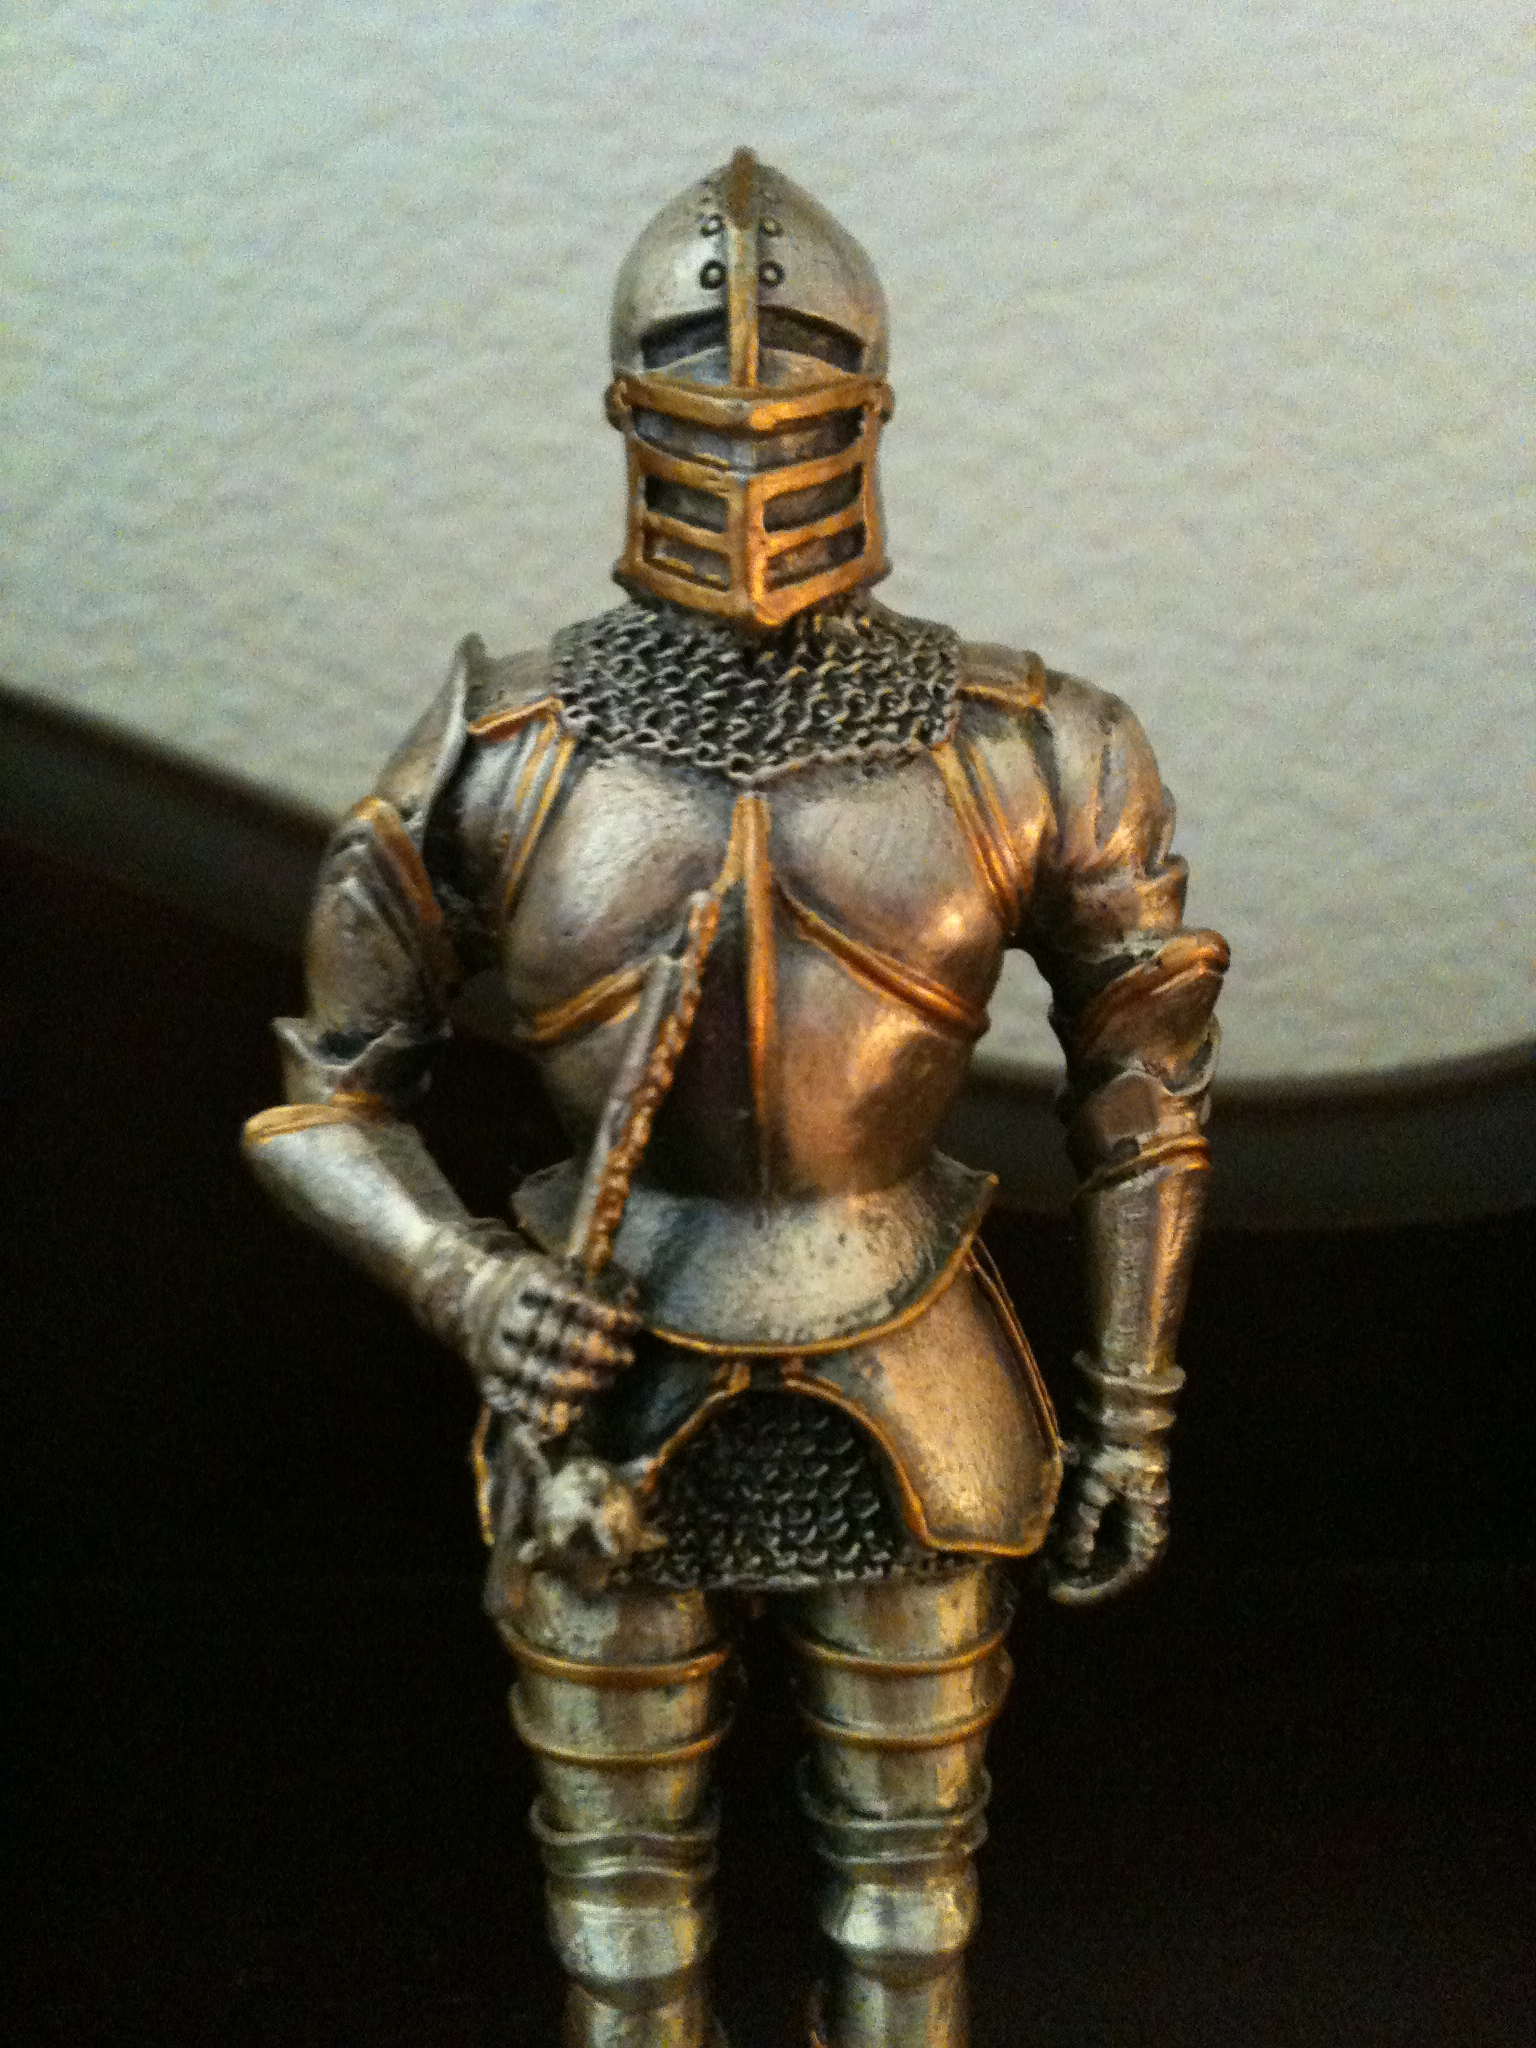 knight in shining armor The medieval knight who fights baddies, woos ladies without deliberately seducing them, behaves honorably, and saves the day with his sword but also, any hero who behaves similarly.